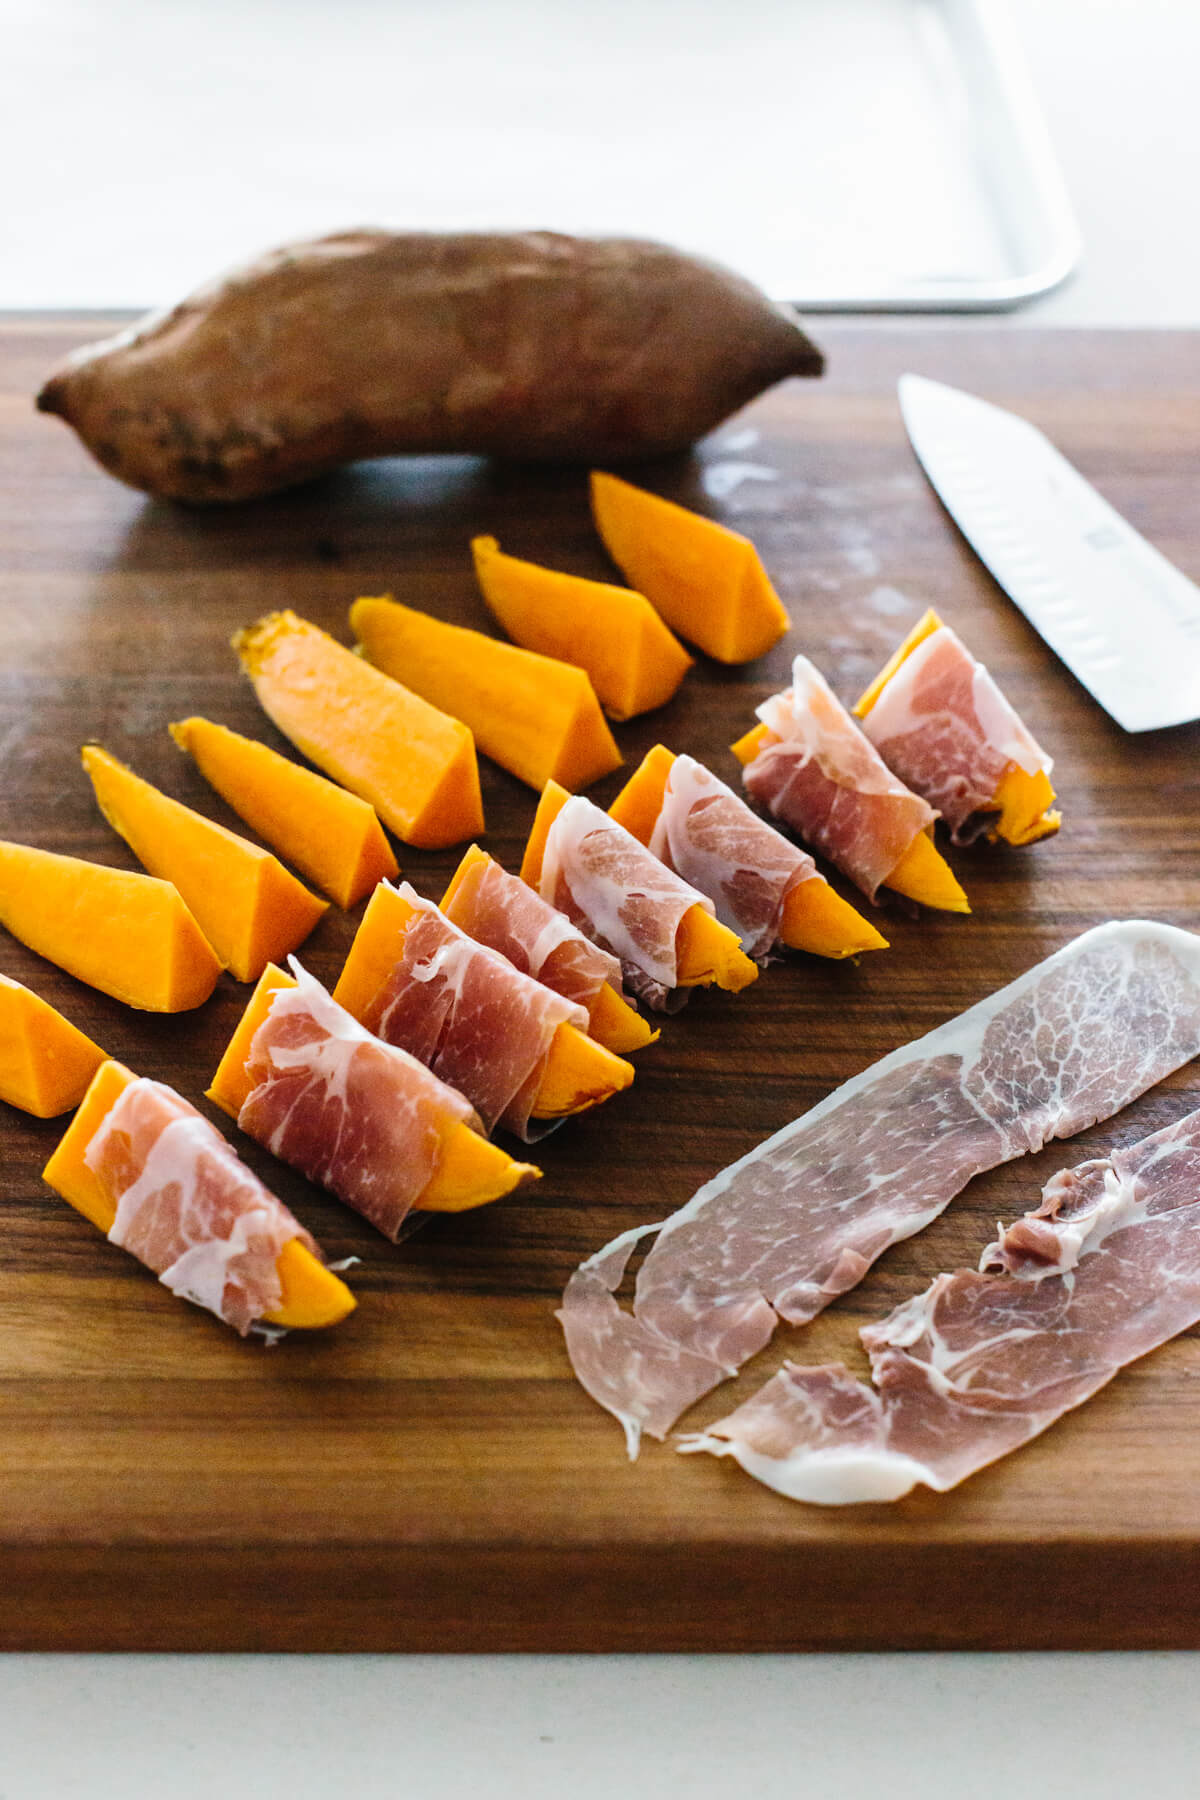 Slicing prosciutto in half and wrapping sweet potato slices.